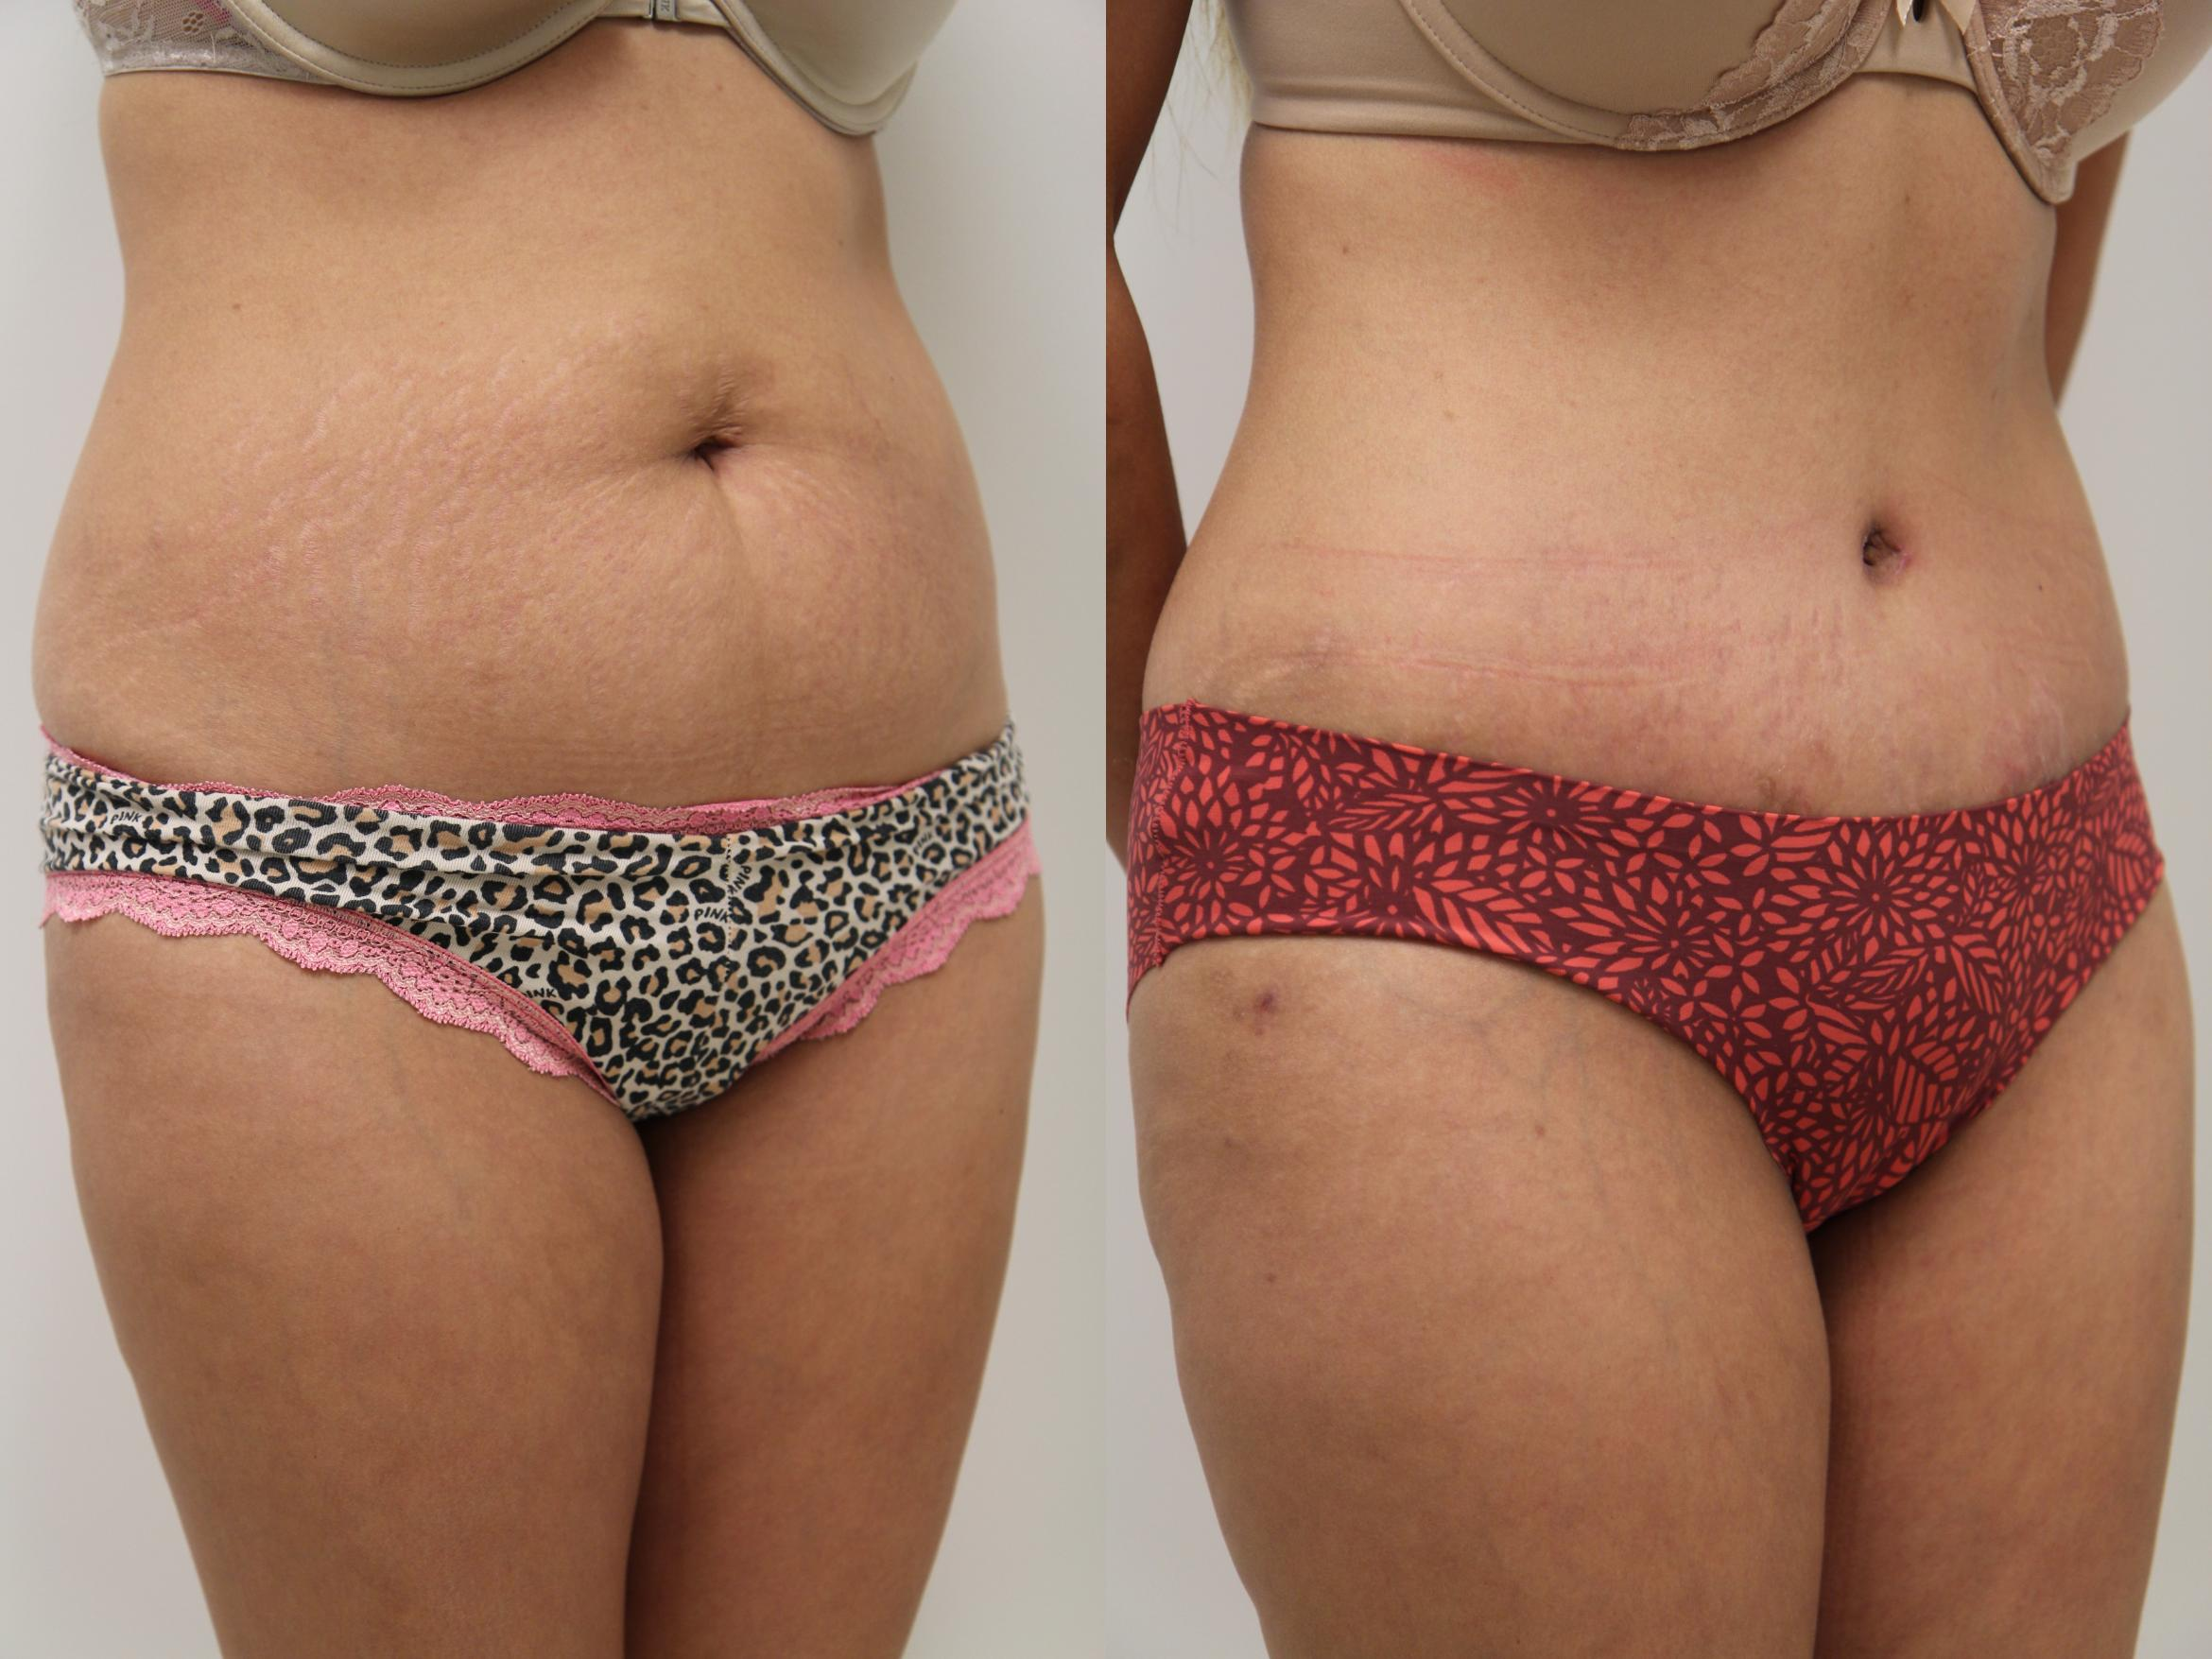 Tummy Tuck (Abdominoplasty) Case 66 Before & After View #1 | Gilbert, AZ | Dr. Josh Olson: Advanced Plastic Surgery Institute